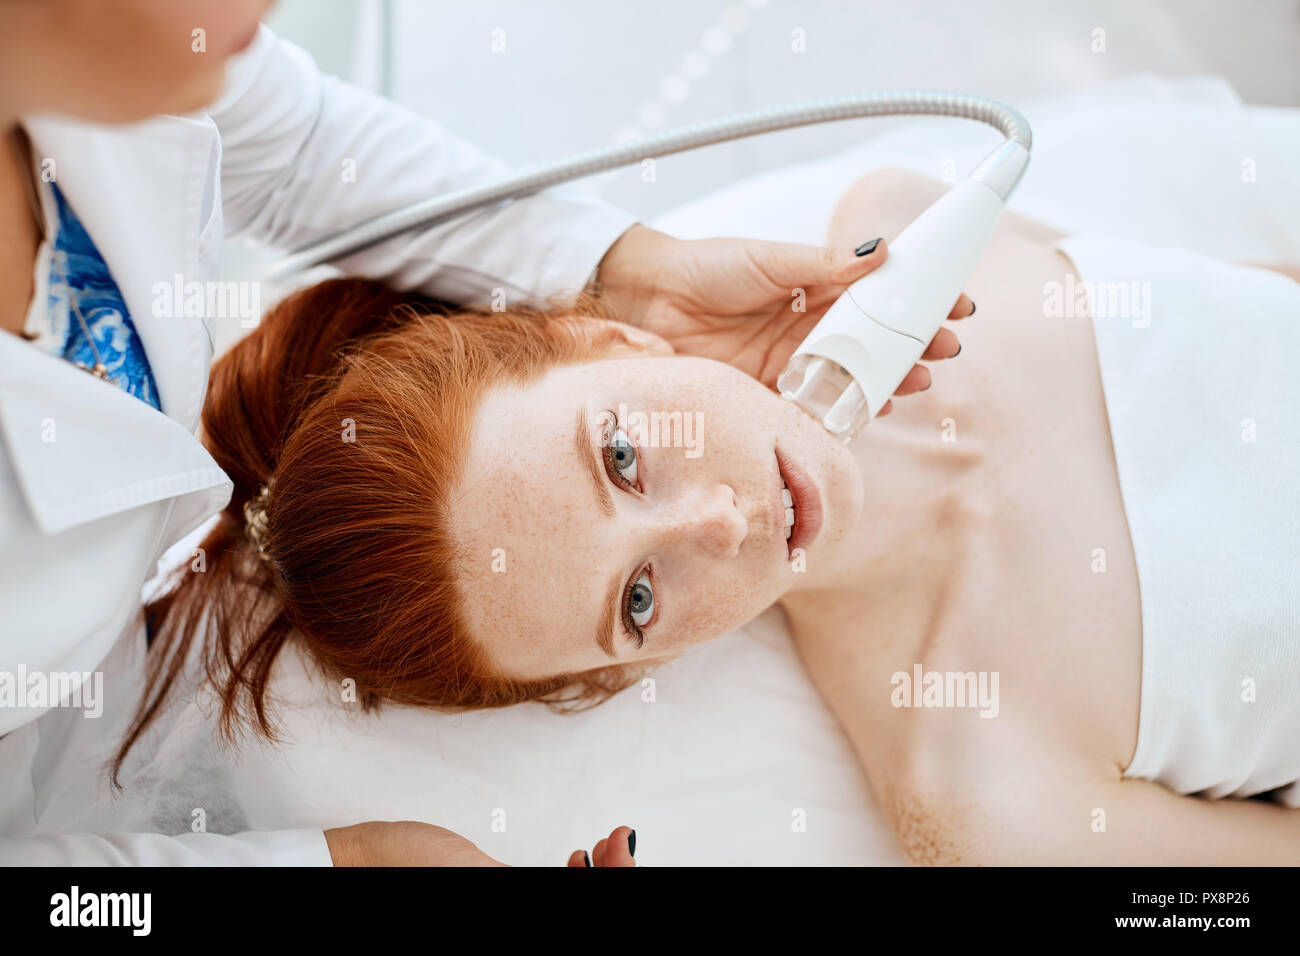 Woman getting rf-lifting in a beauty salon. Modern technologies in cosmetology. - Stock Image